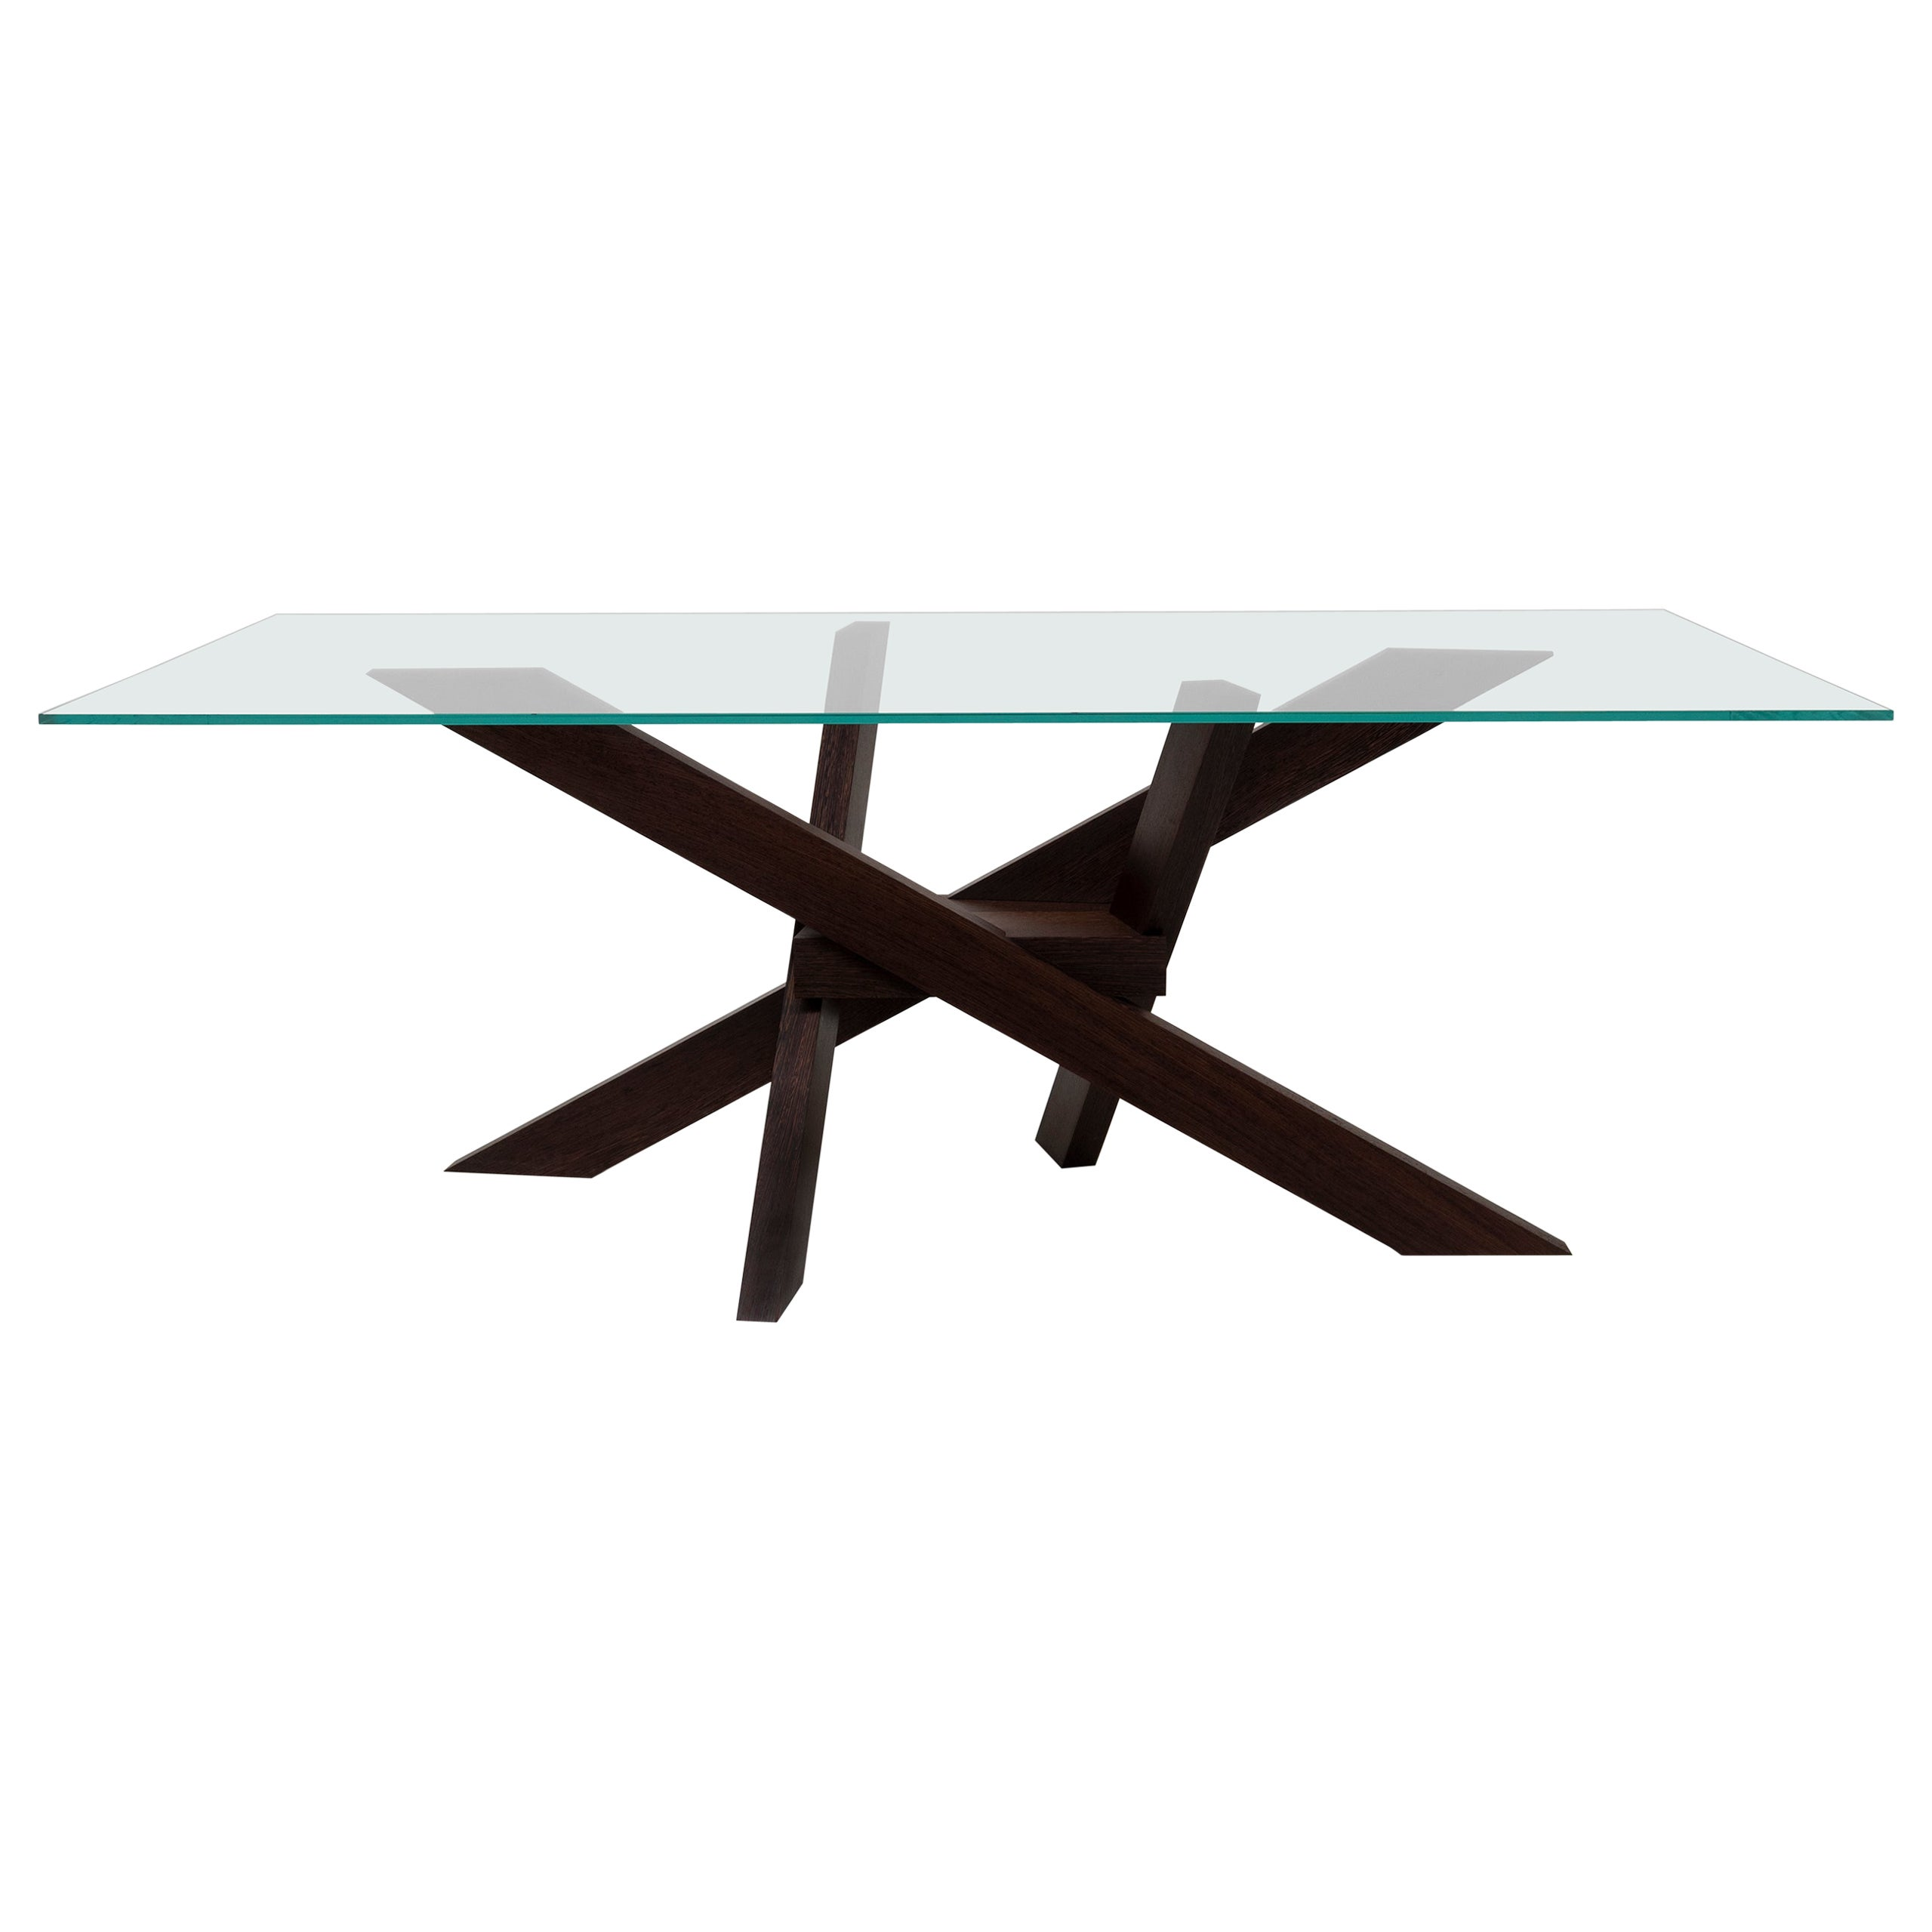 Illusion Table with legs in wenge solid wood and glass top